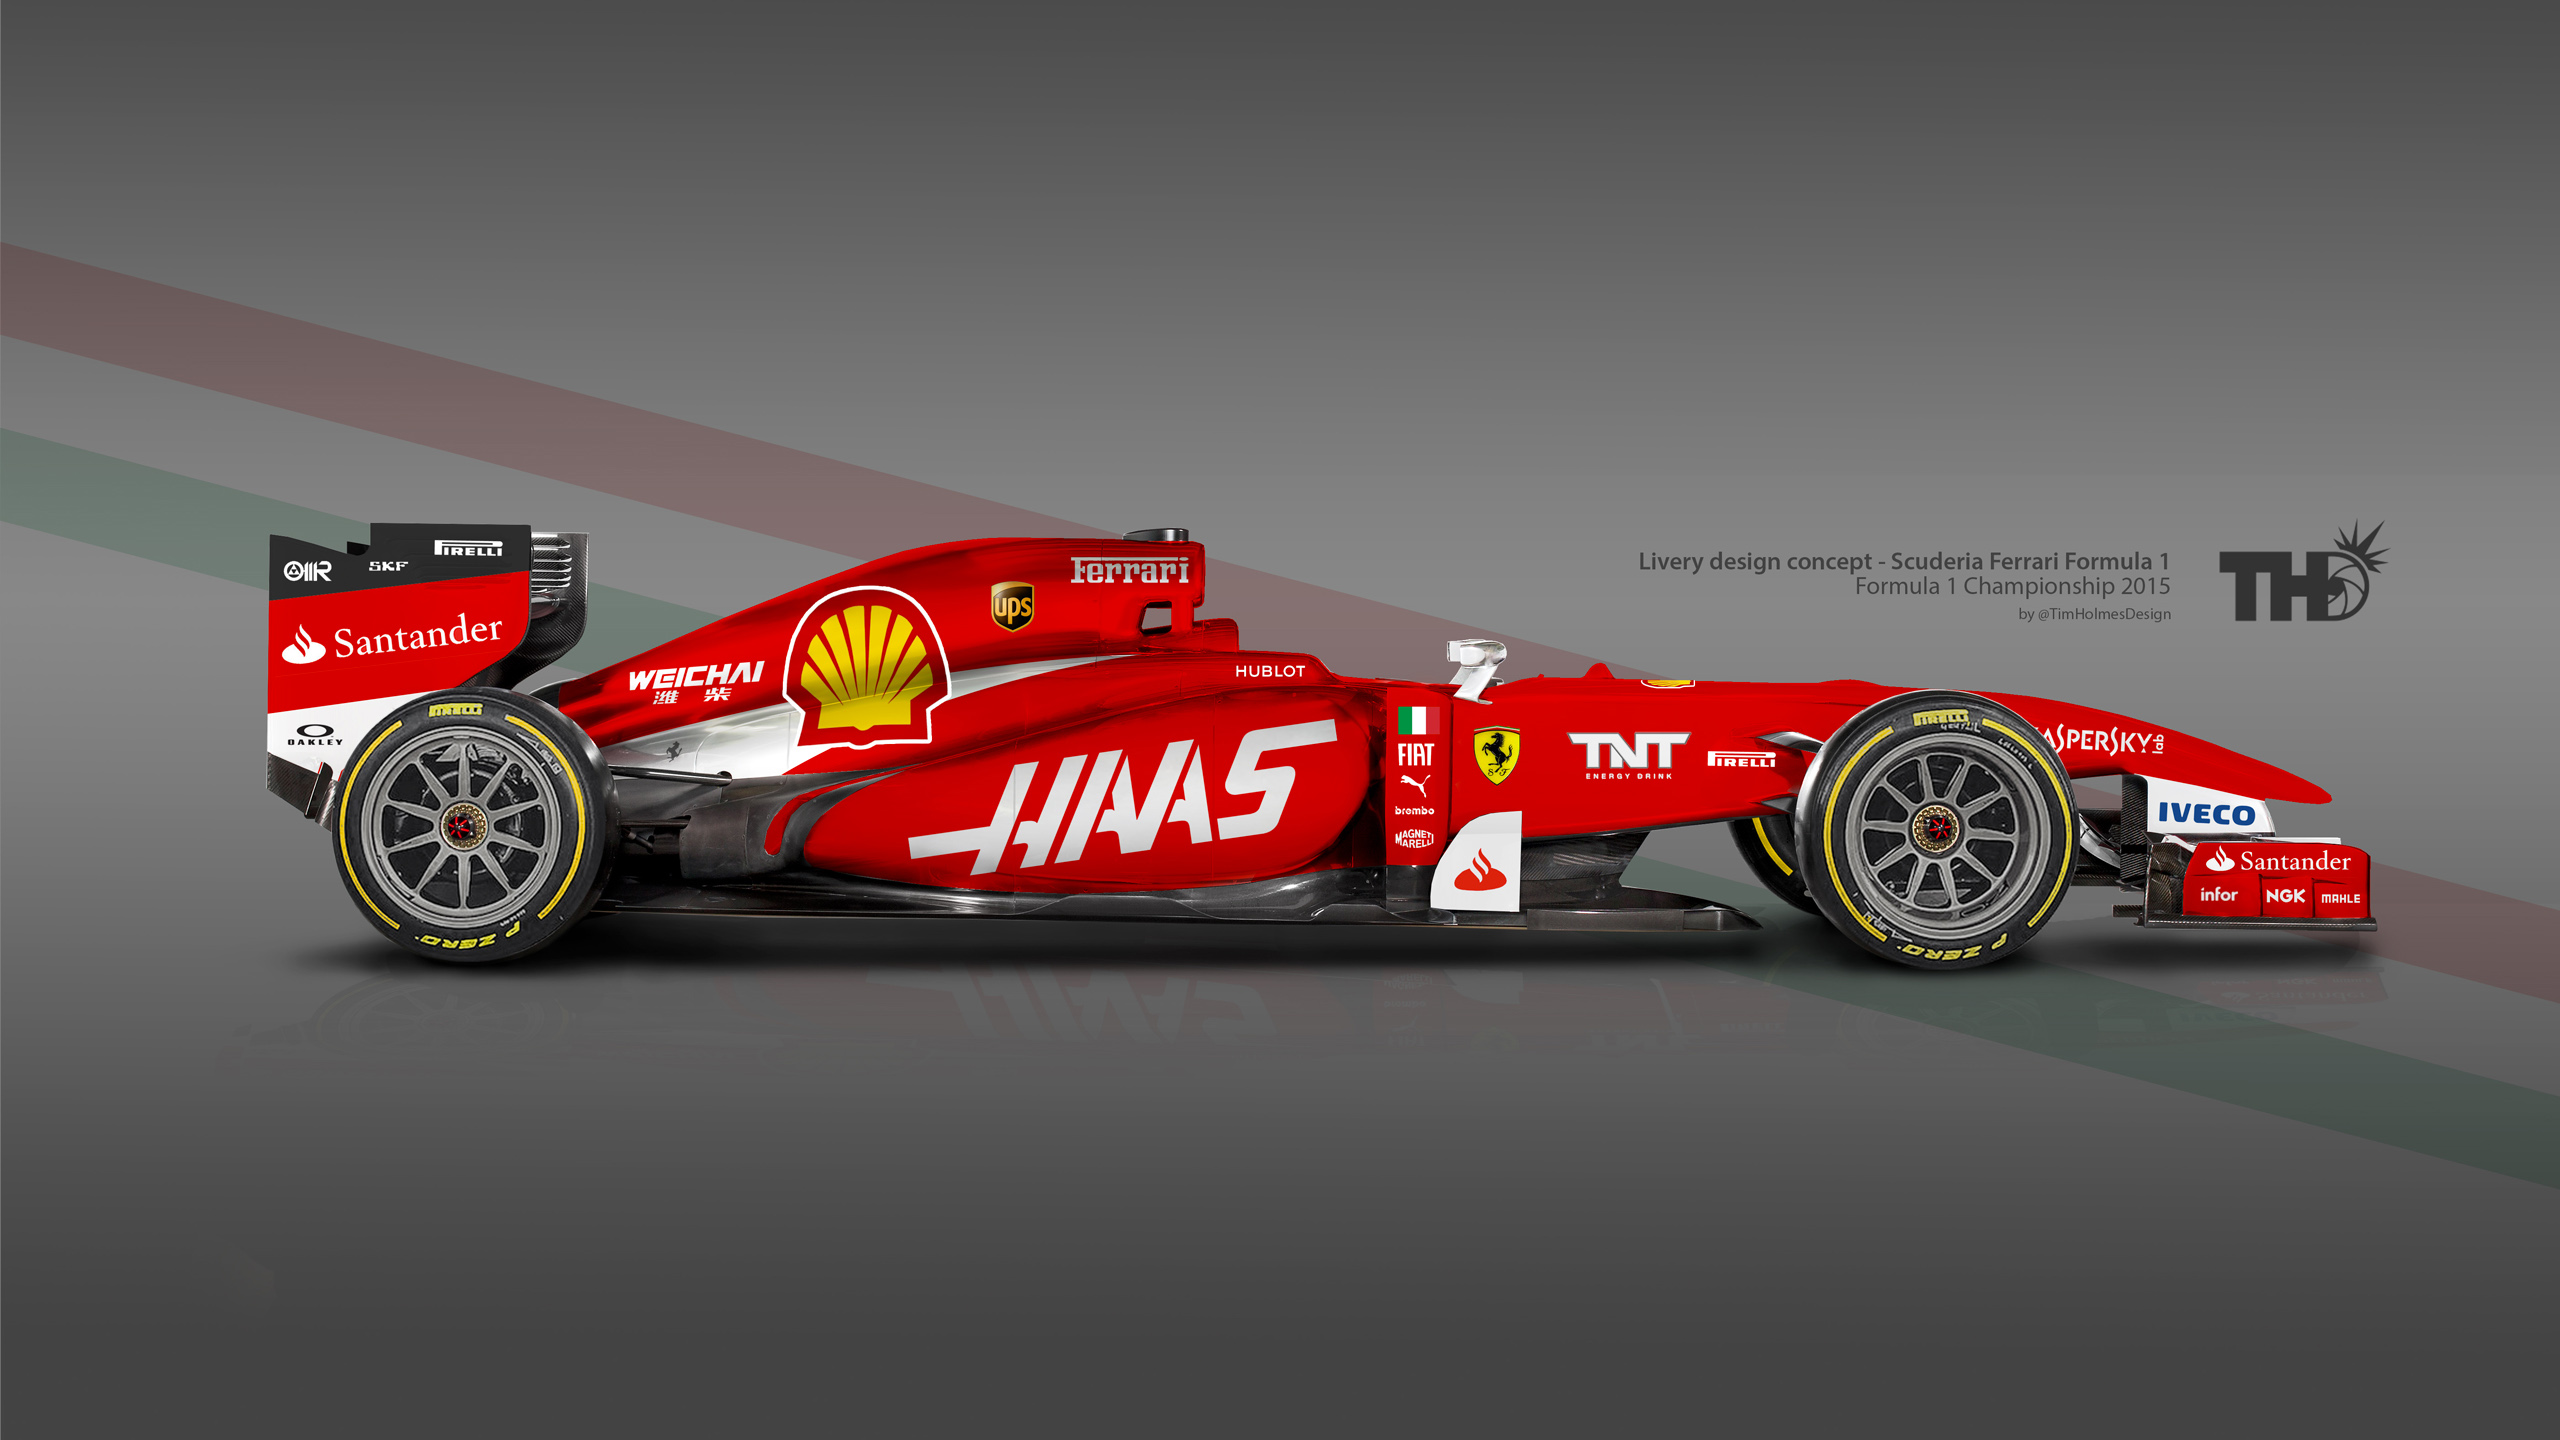 Ferrari Formula 1 2015 Wallpaper Hd Car Wallpapers Id 5607